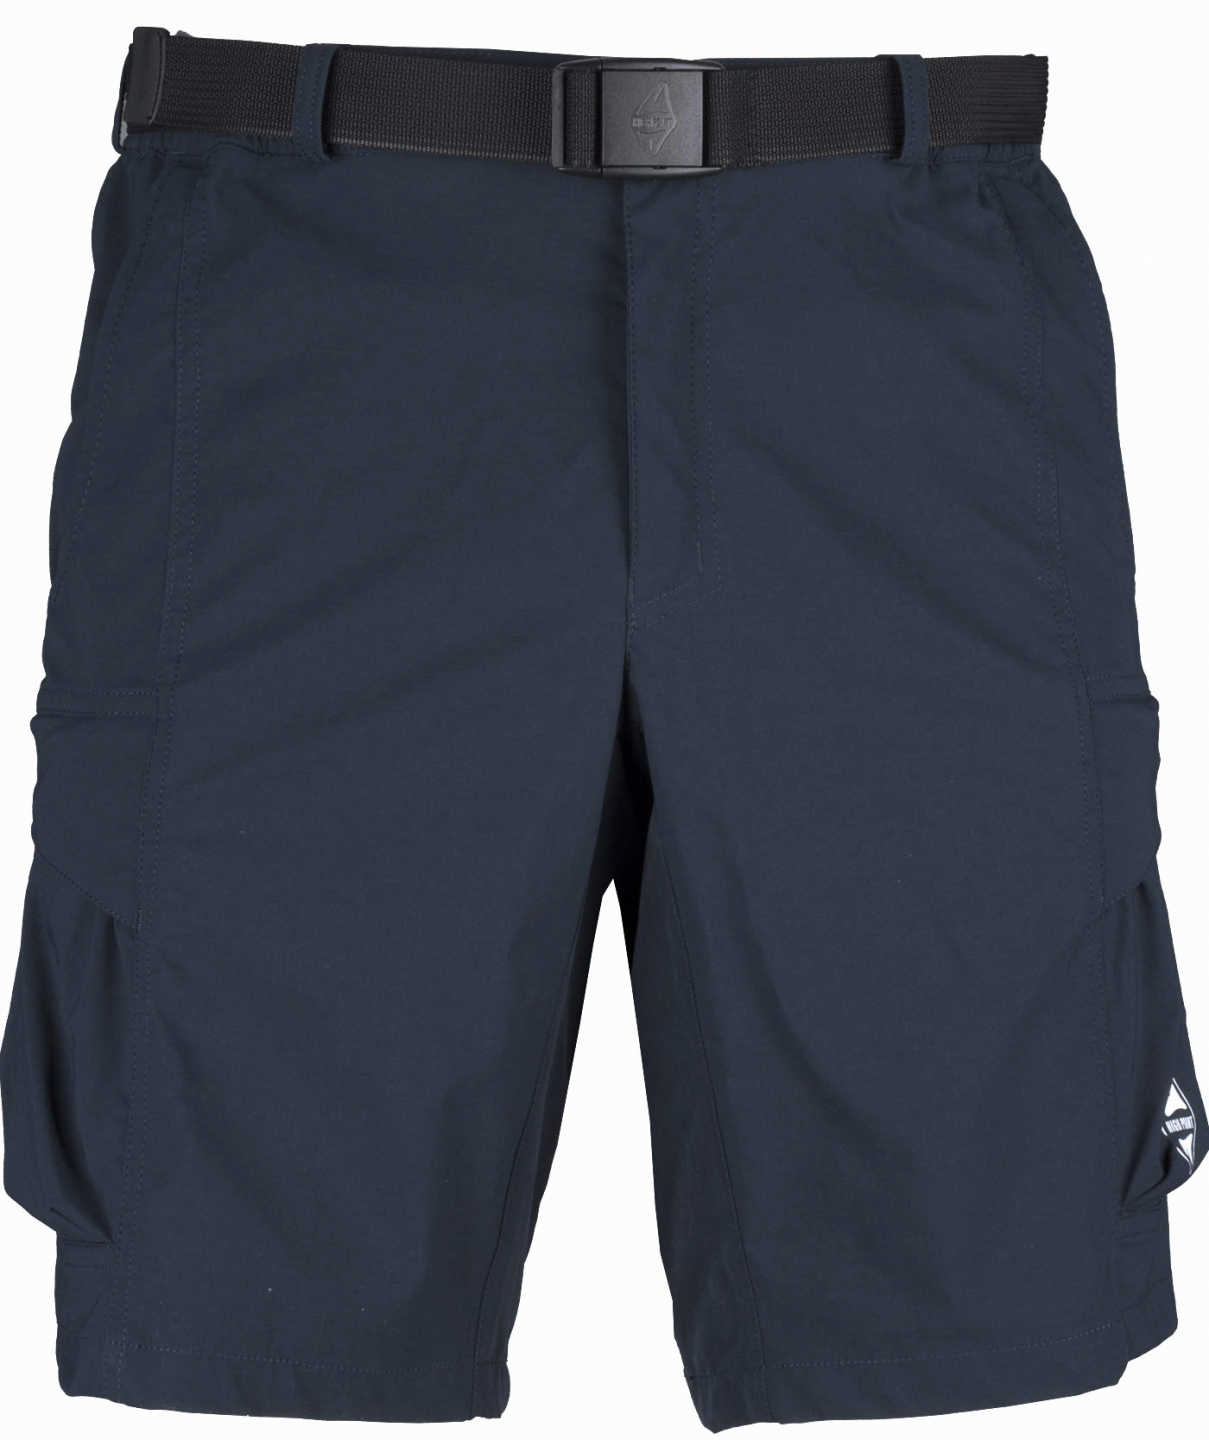 HIGH POINT Saguaro 2.0 shorts